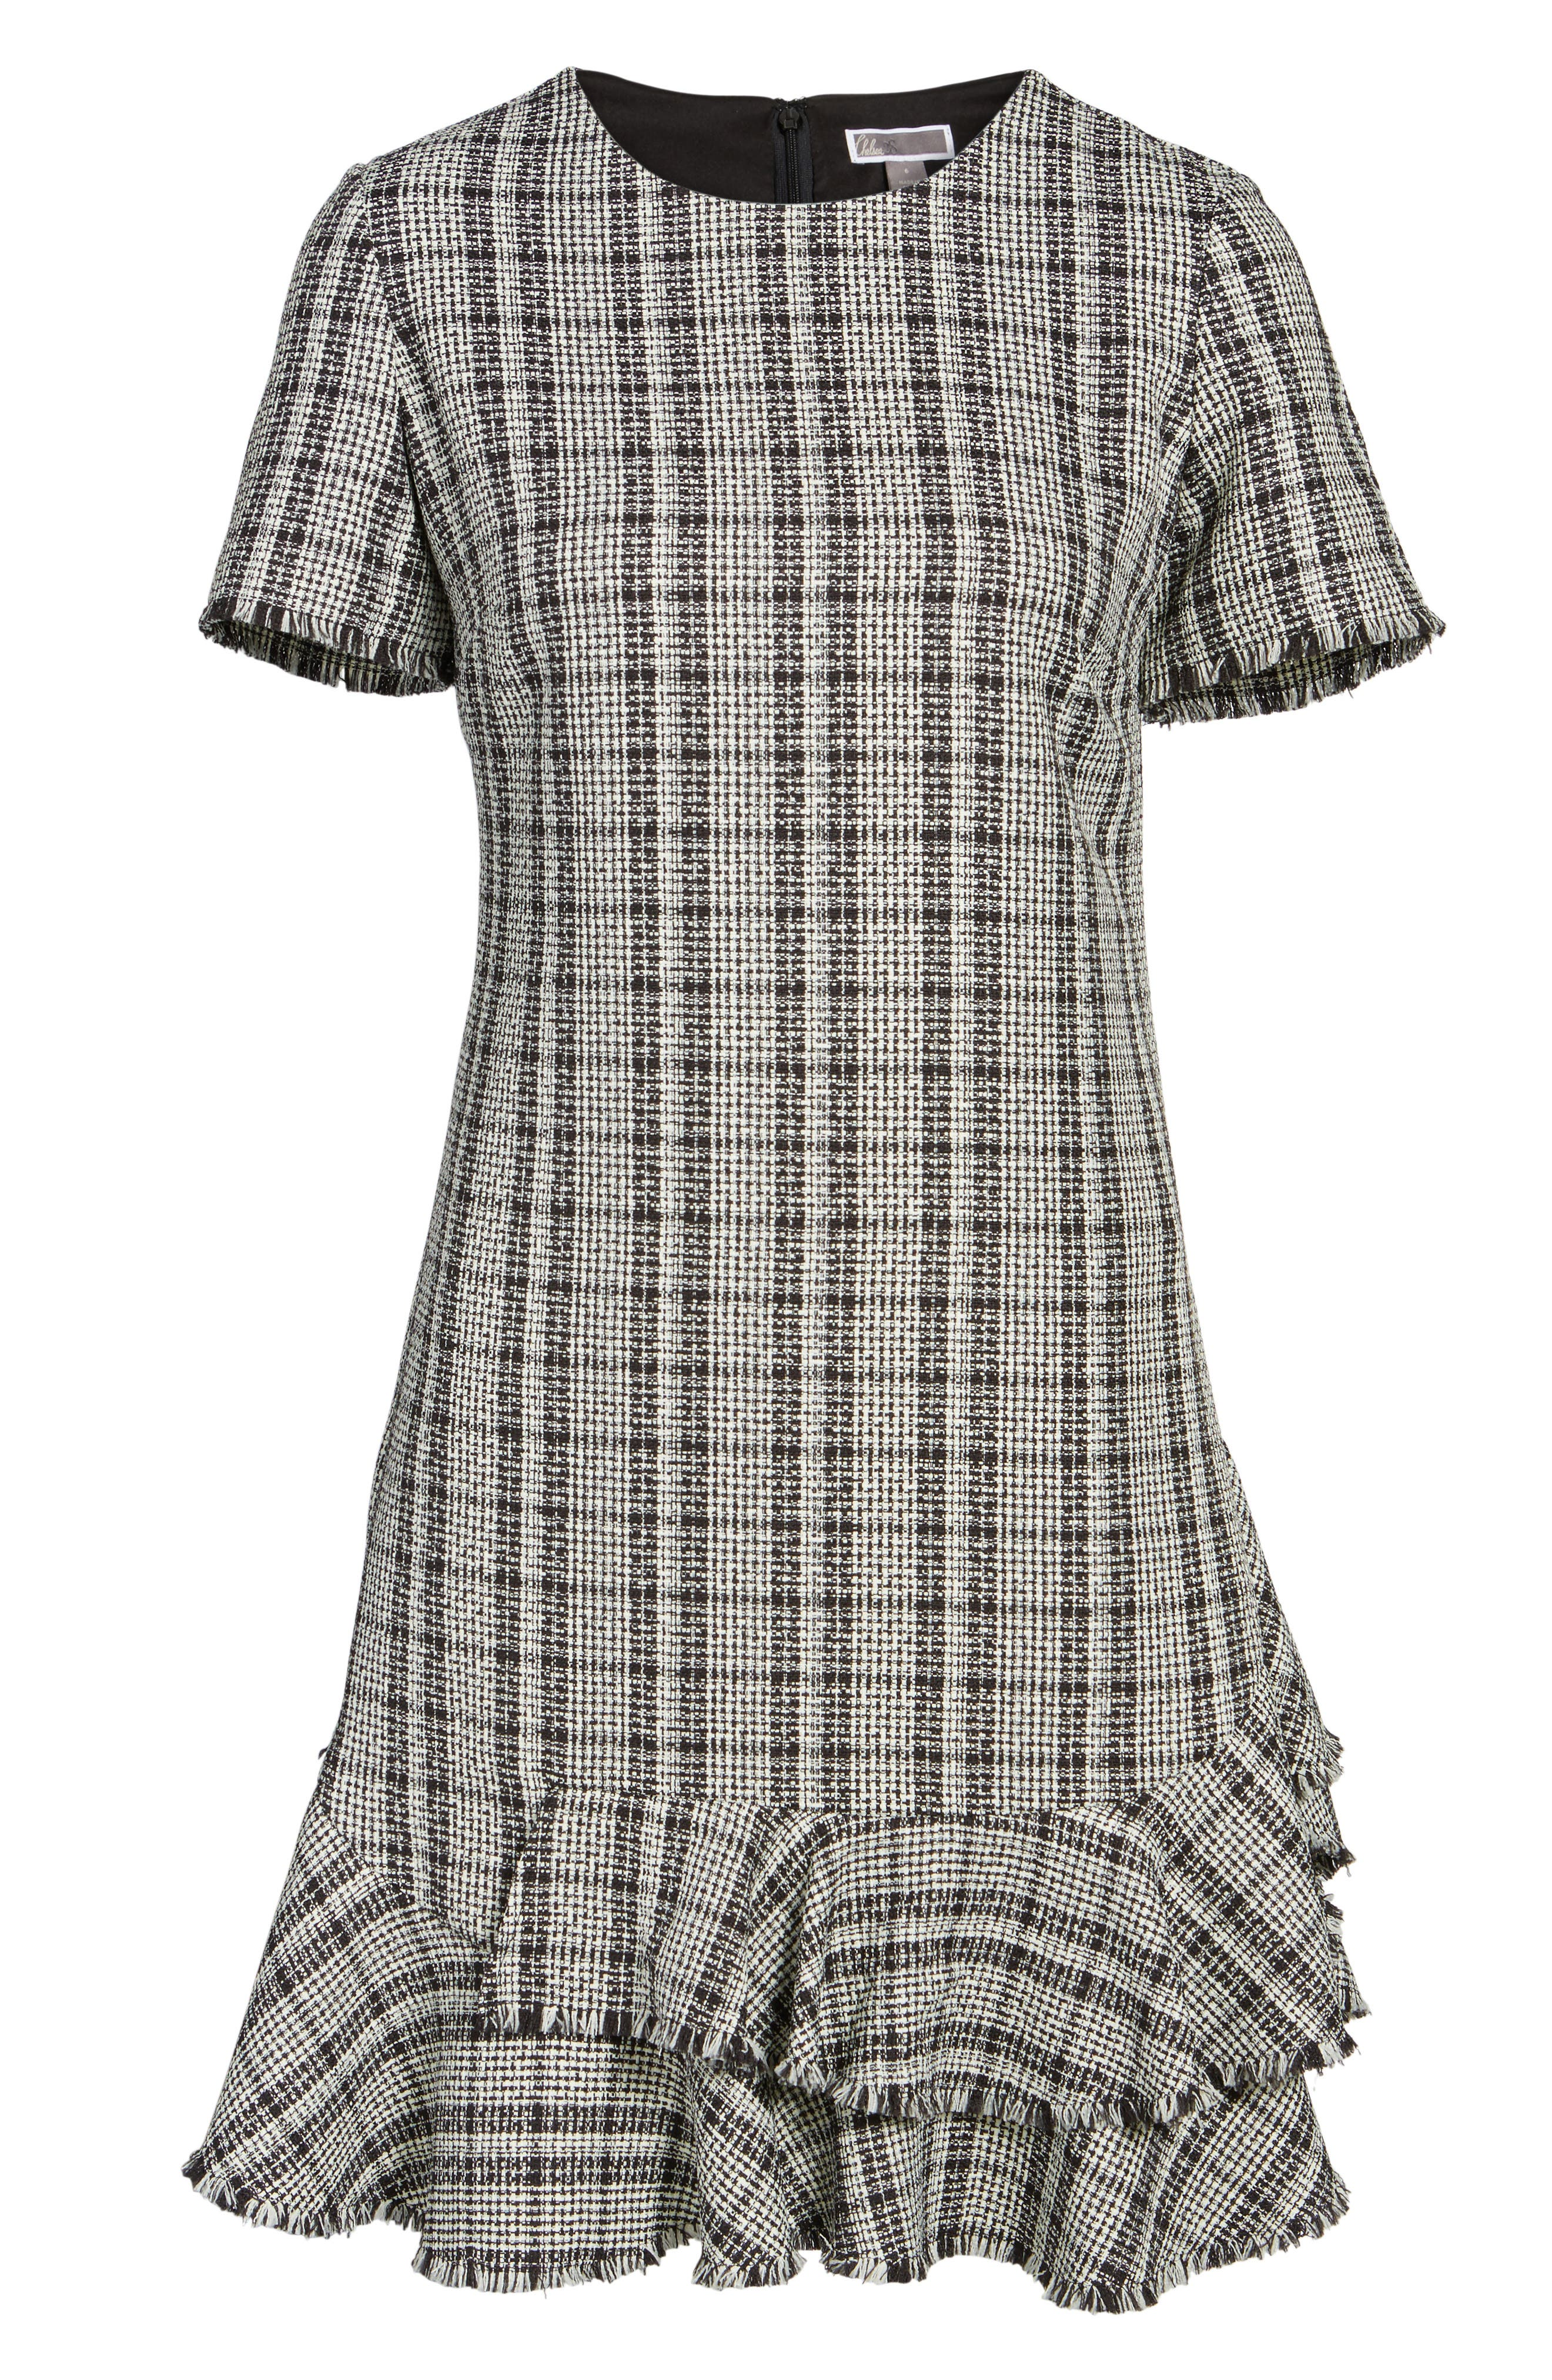 Tweed Ruffle Shift Dress,                             Alternate thumbnail 6, color,                             Black Ivory Combo